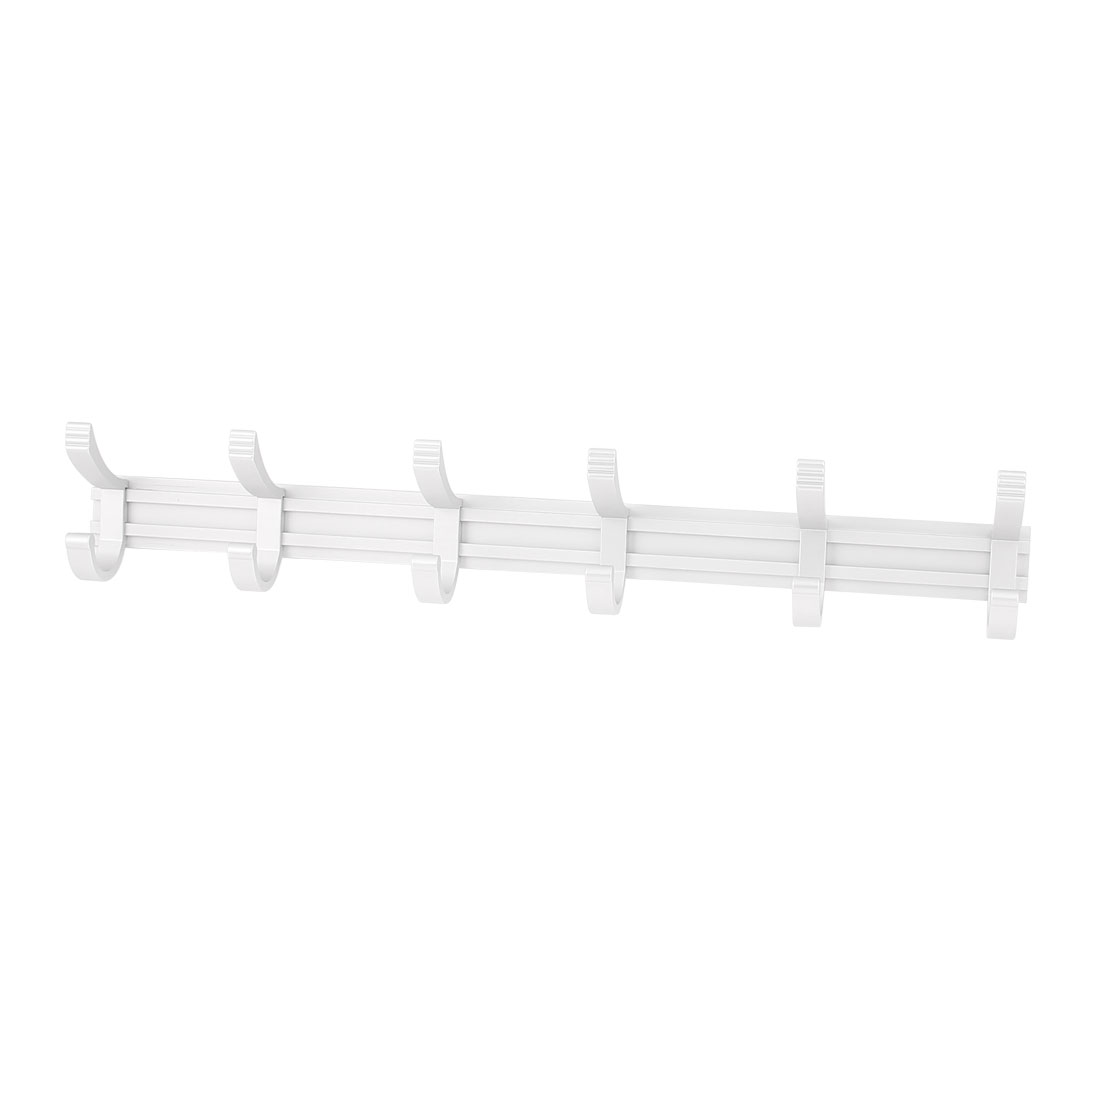 Home Aluminum Wall Mounted Towel Clothes Hat Bag 6 Hooks Hanger Rack Silver Tone